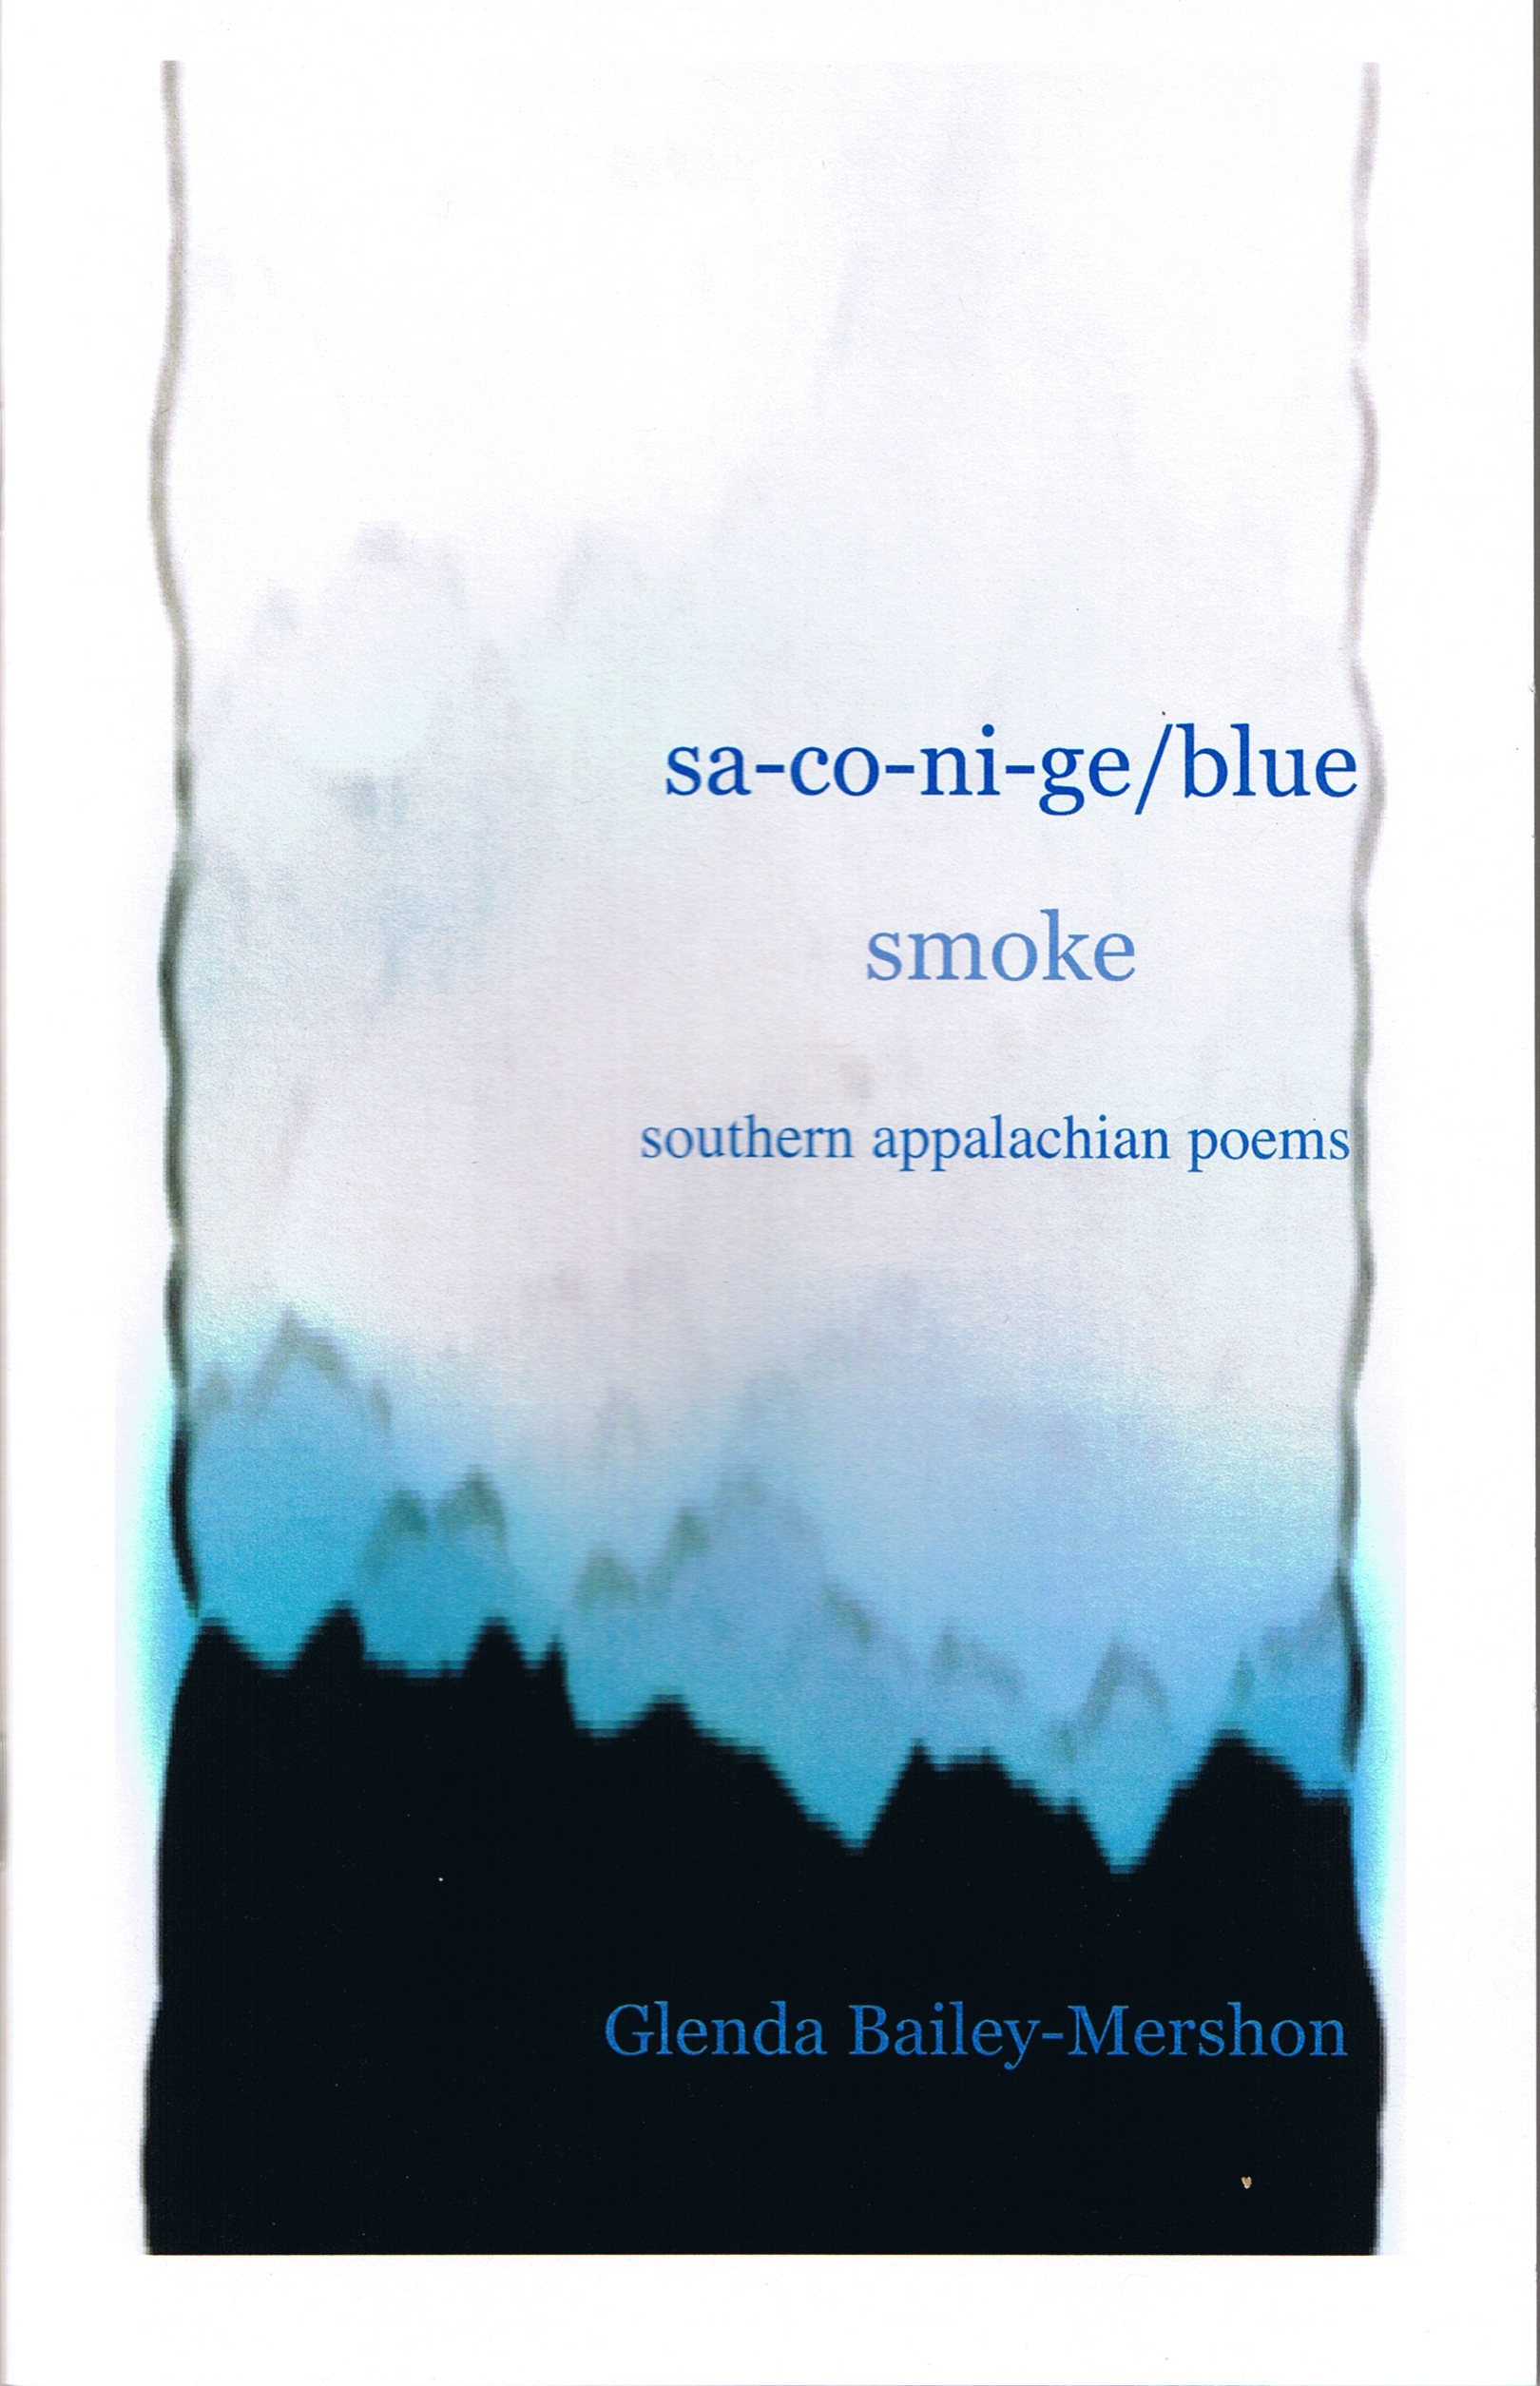 sa-co-ni-ge/blue smoke: poems from the Southern Appalachians